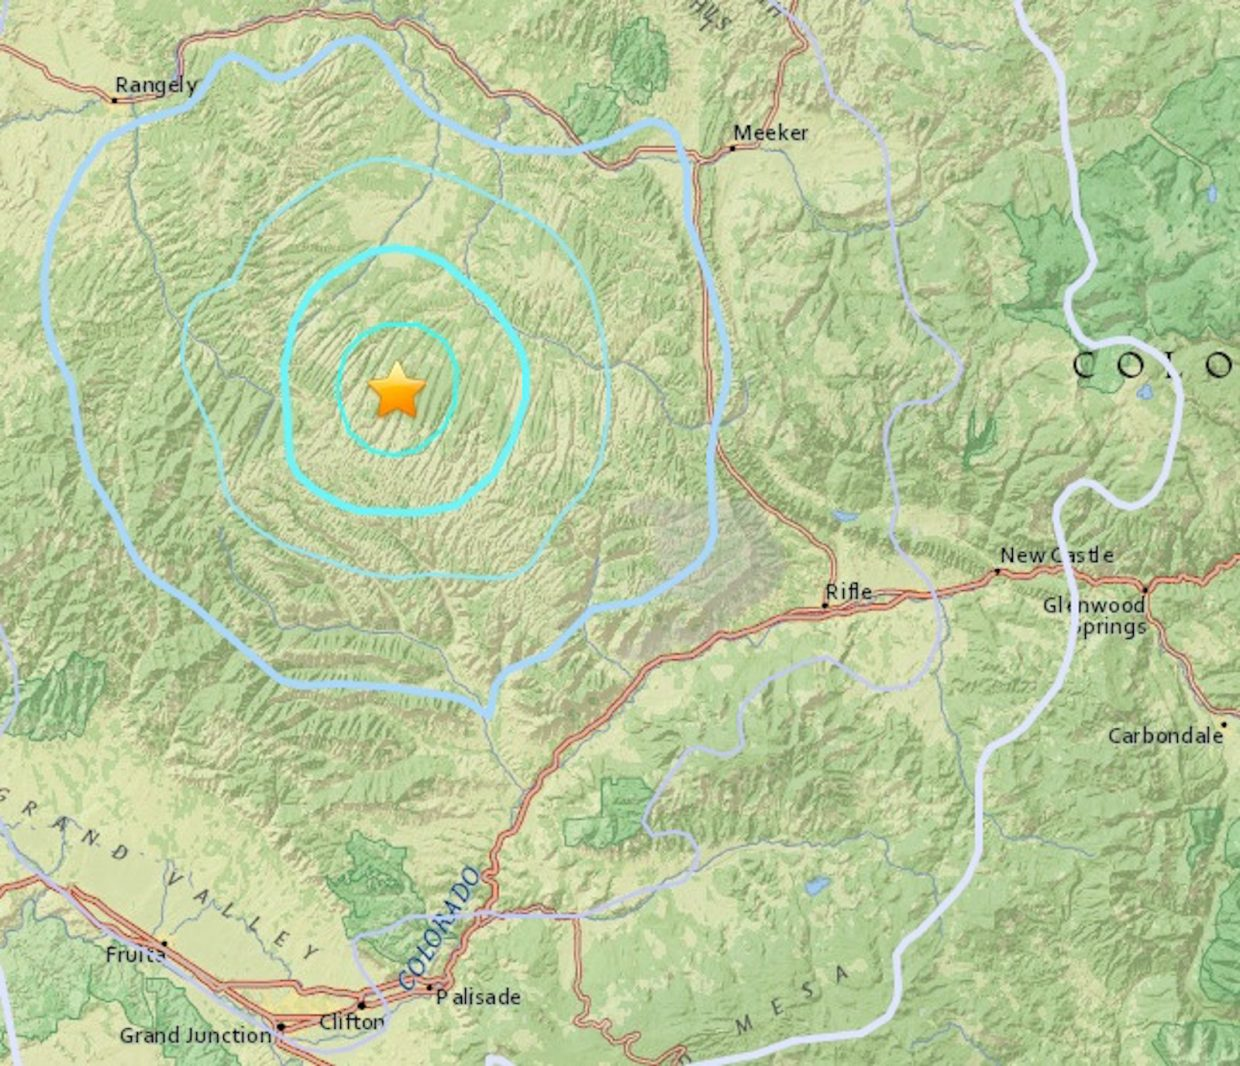 Nw Colorado Map.Colorado S Strongest Earthquake Of 2018 Strikes Nw Of Parachute On